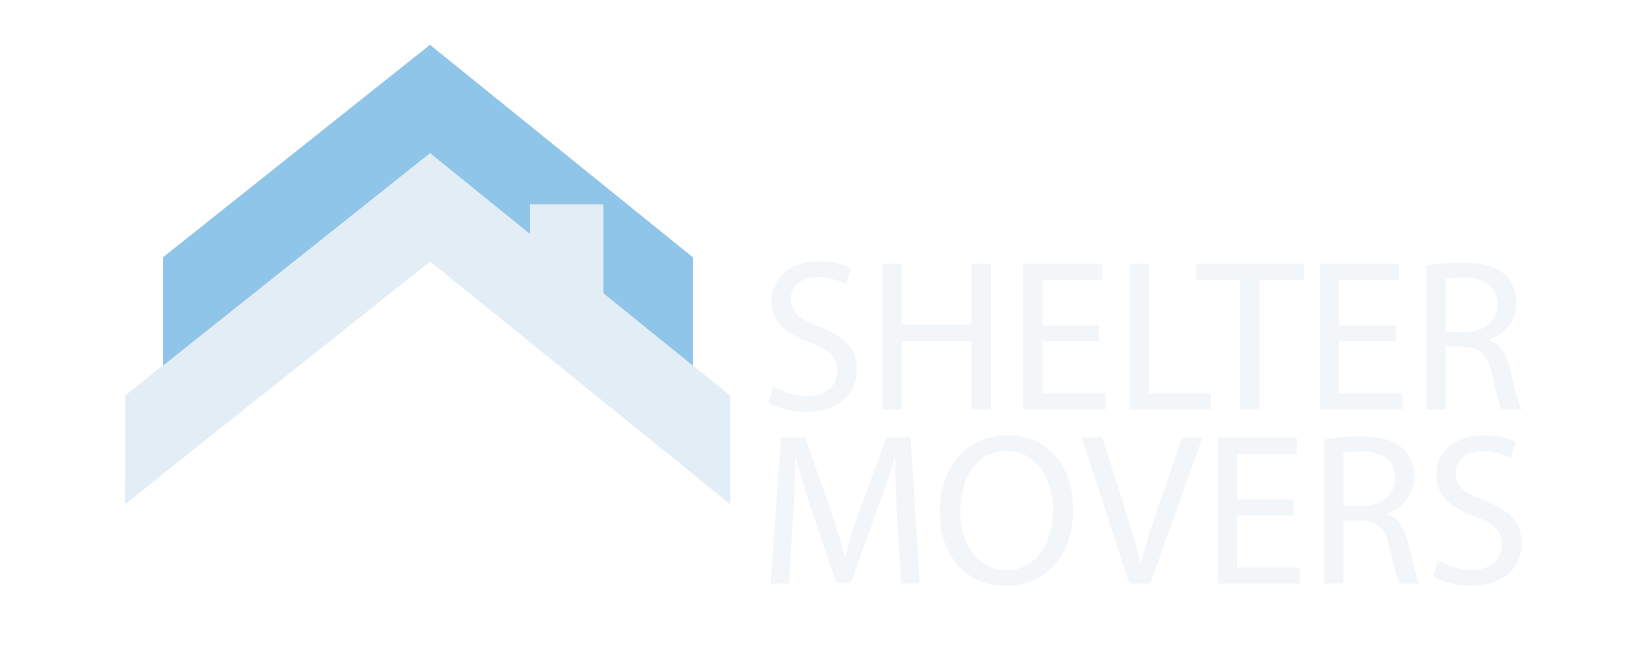 Shelter-Movers---Magnified-Public-Relations---Clients.png